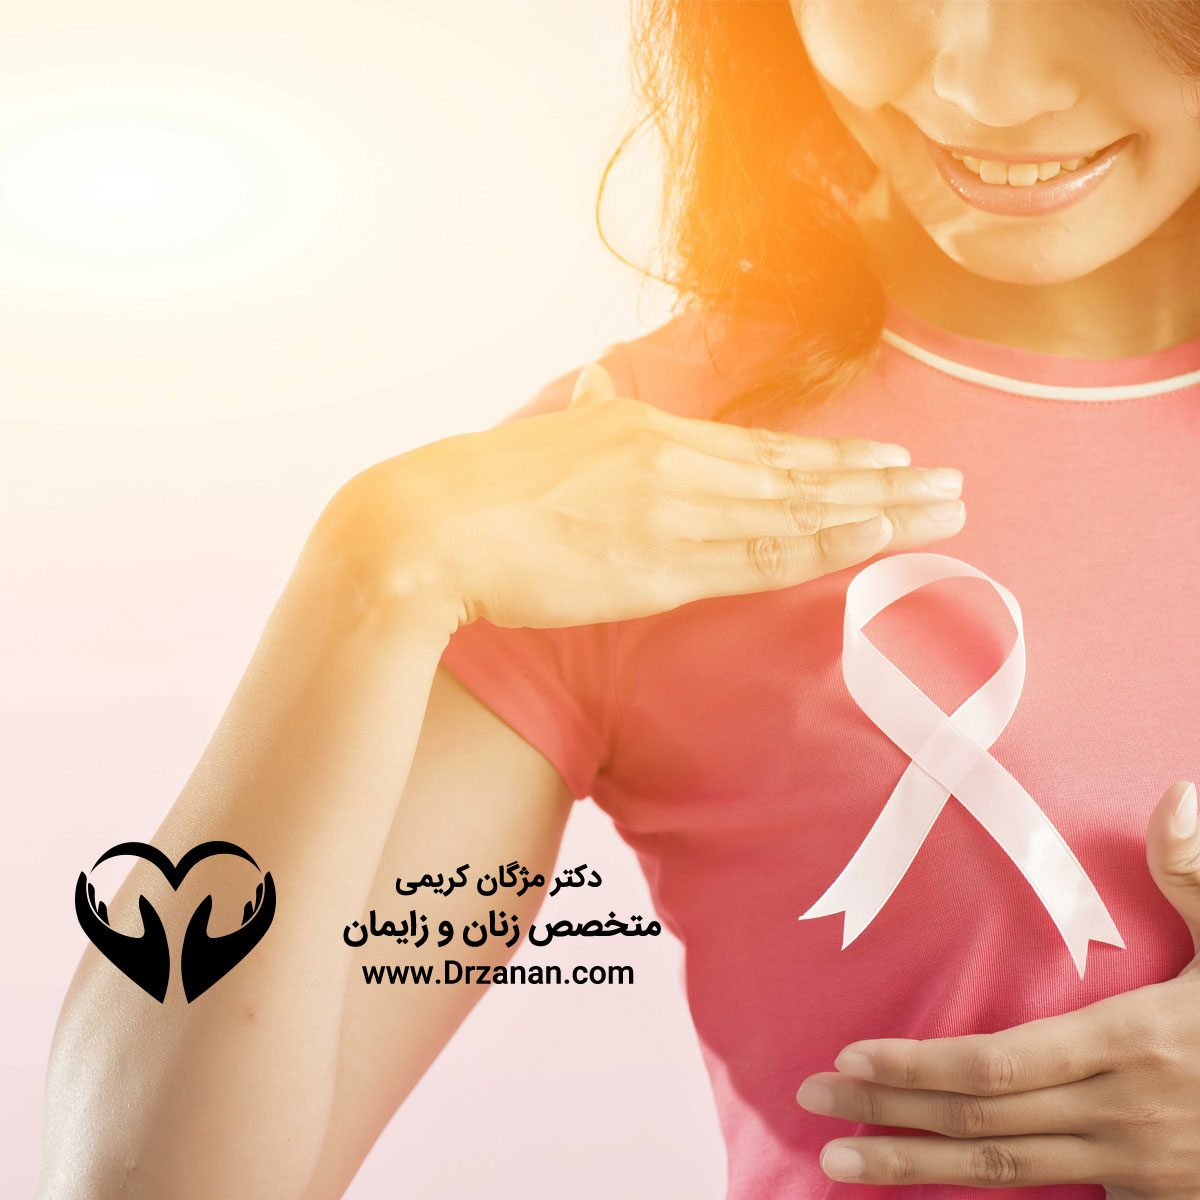 causes-of-breast-cancer-in-women-1200x1200.jpg